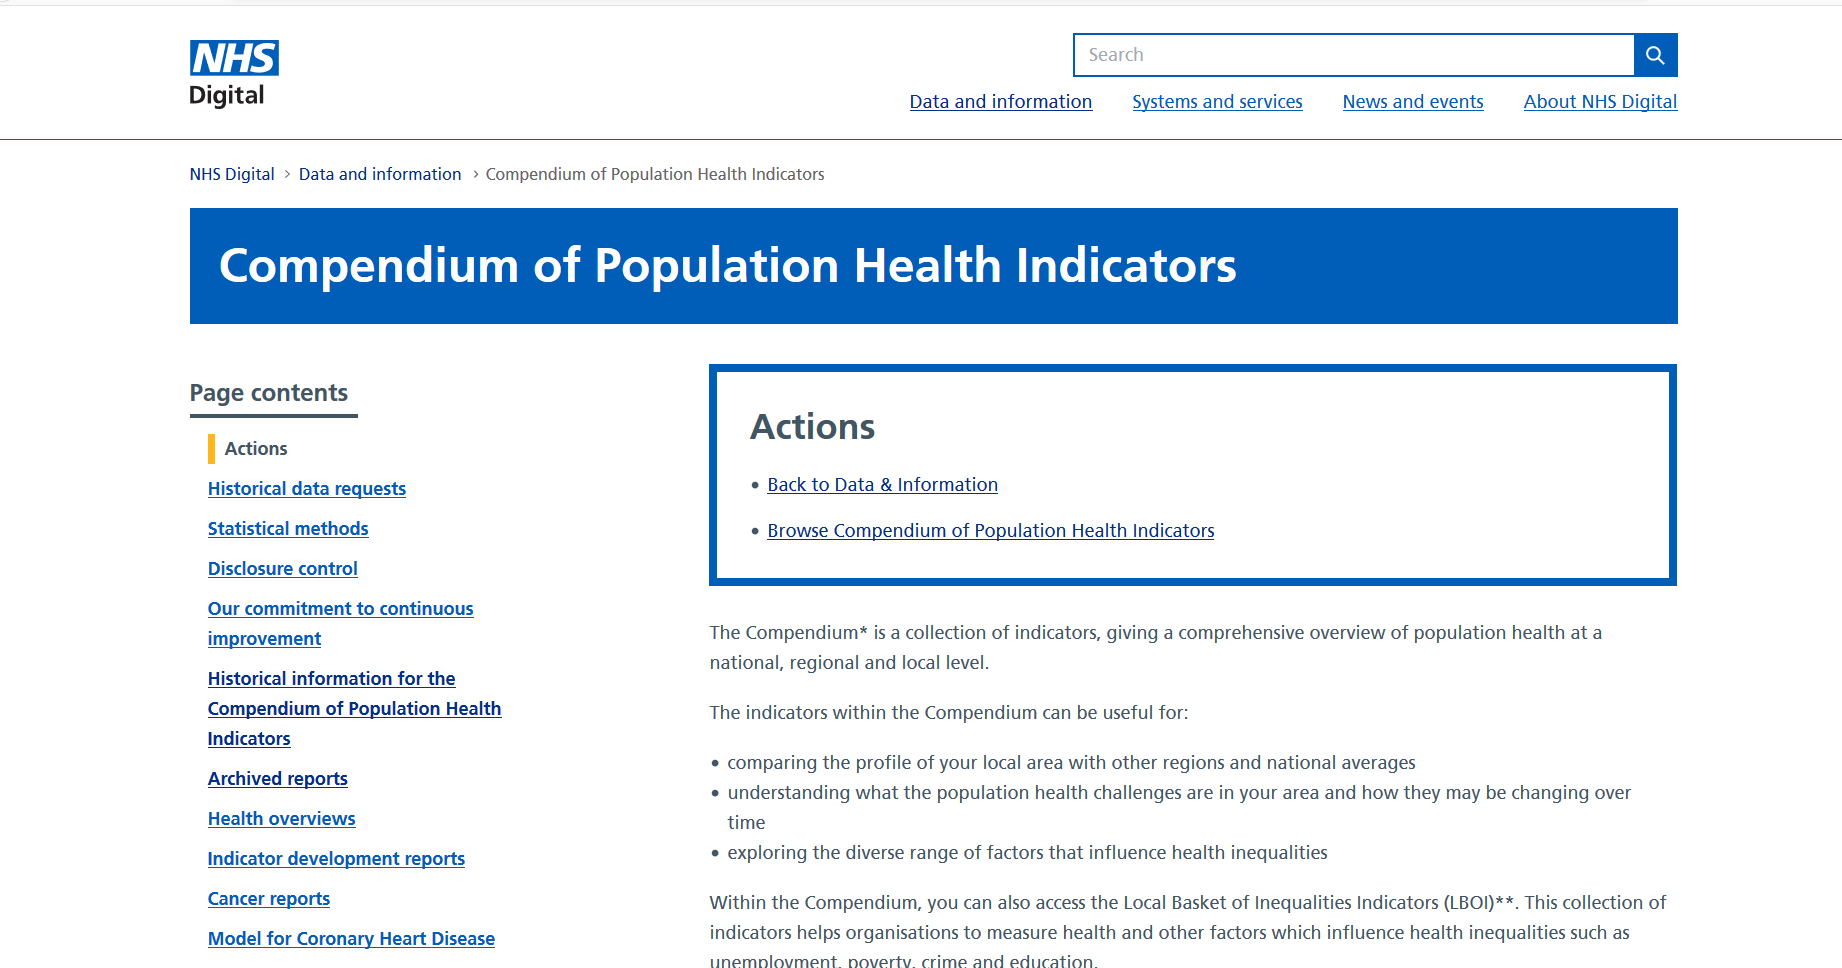 Compendium of Population Health Indicators